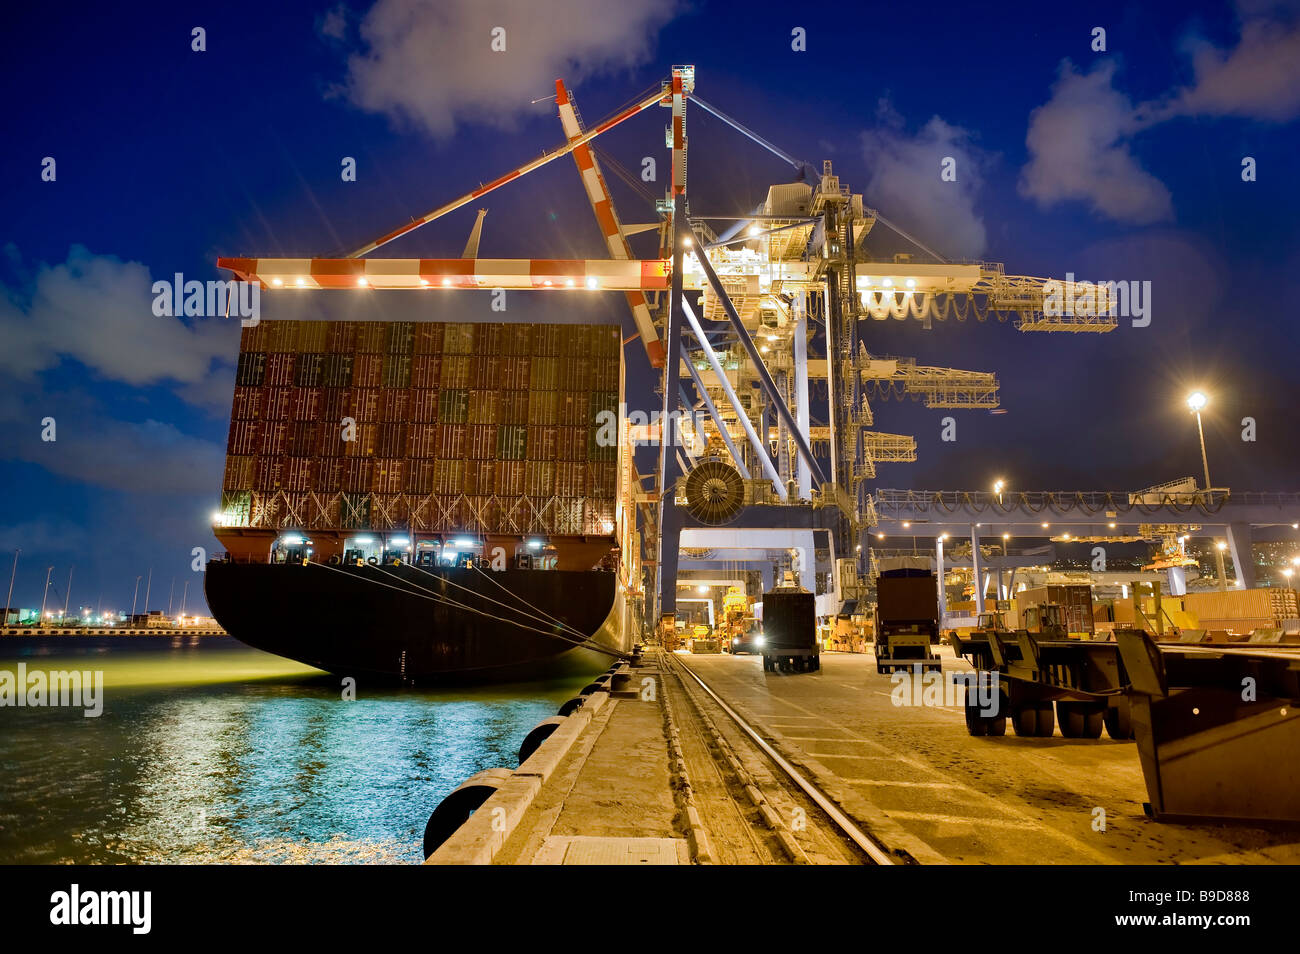 cargo ship at dock by night from behind - Stock Image